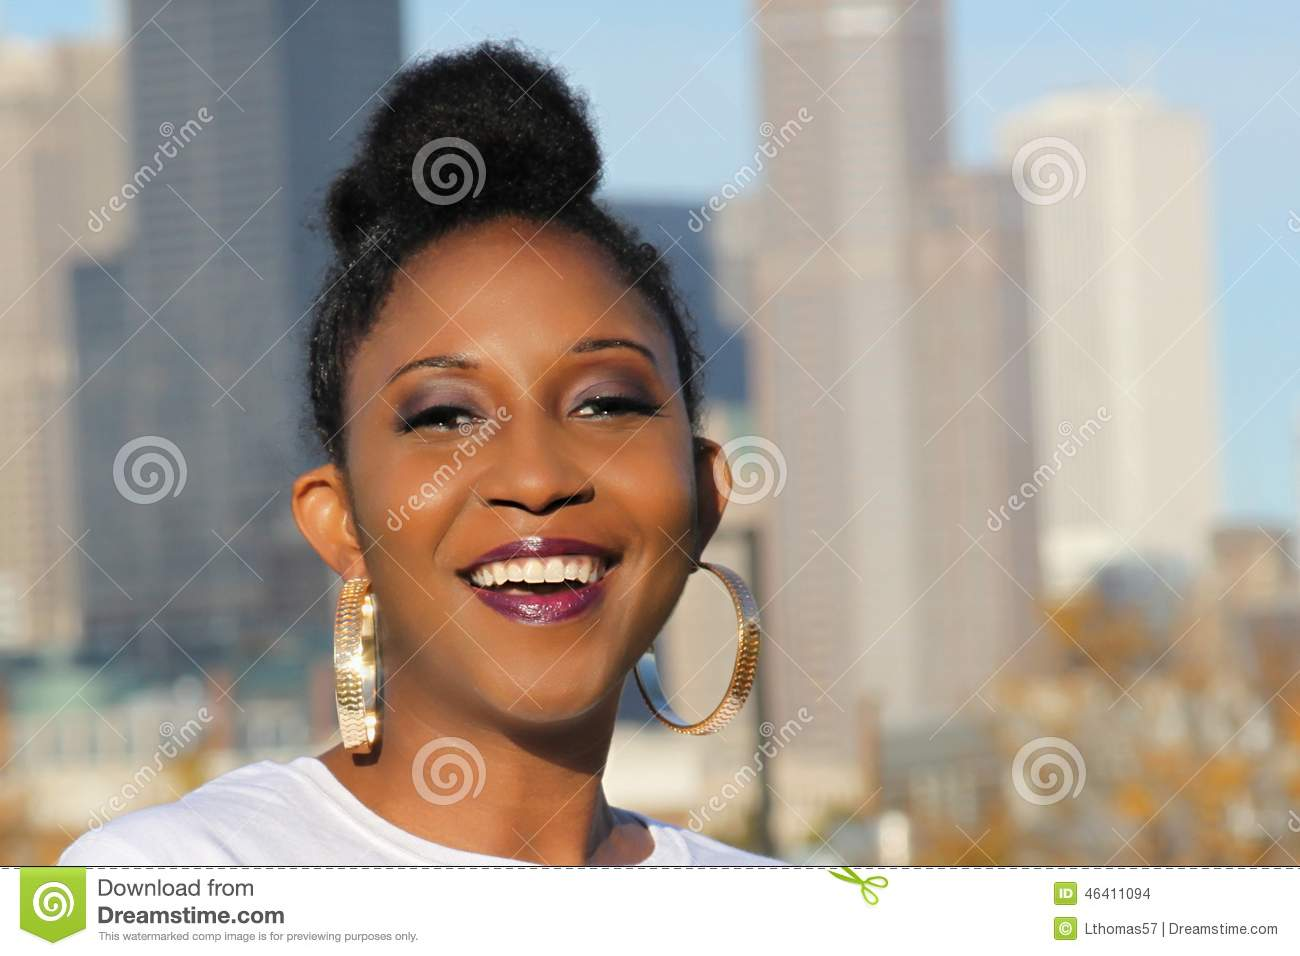 Beautiful smiling young black woman with a big smile an updo hairstyle ... Angry Black Woman Face